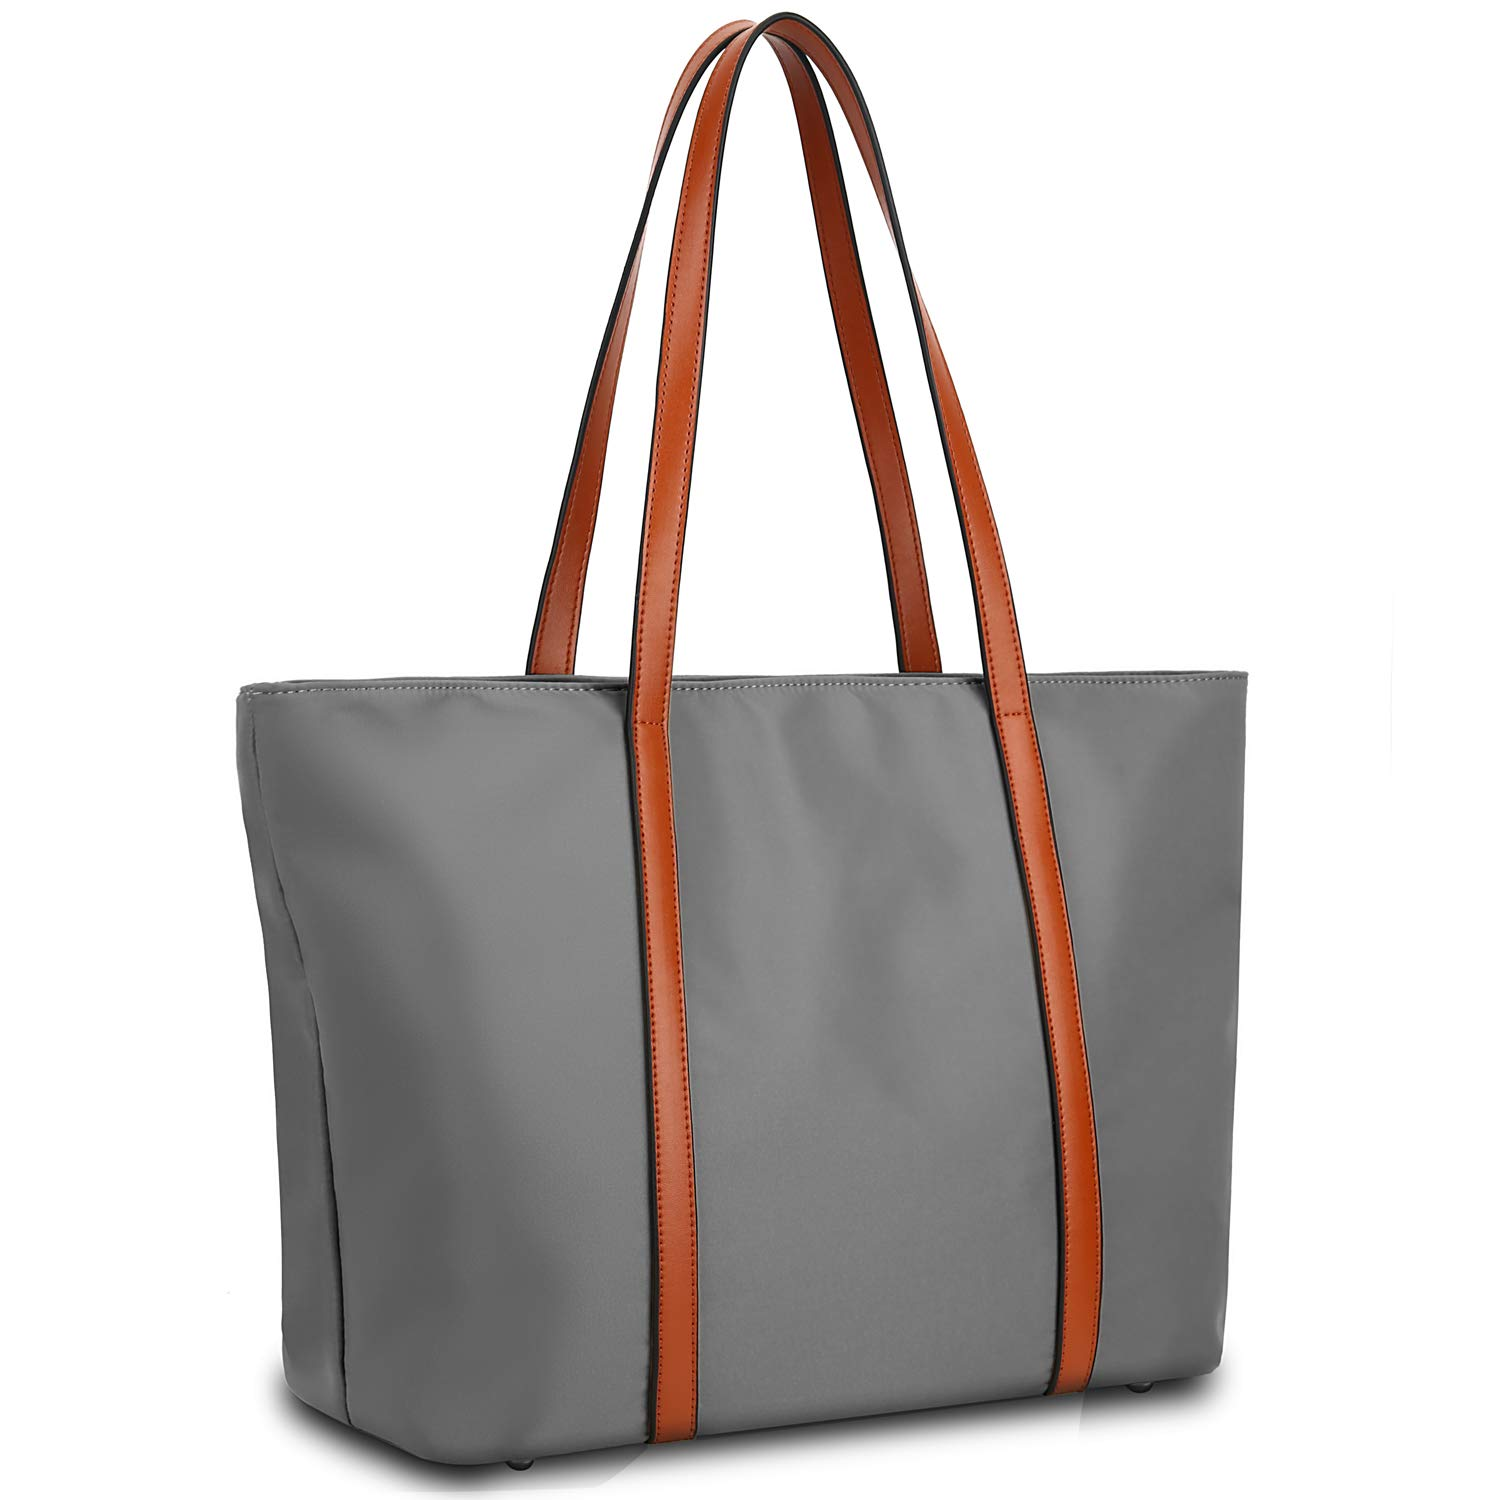 ea62cda25b5 YALUXE Women s Oxford Nylon Large Capacity Work fit 15.6 inch Tote Shoulder  Bag product image